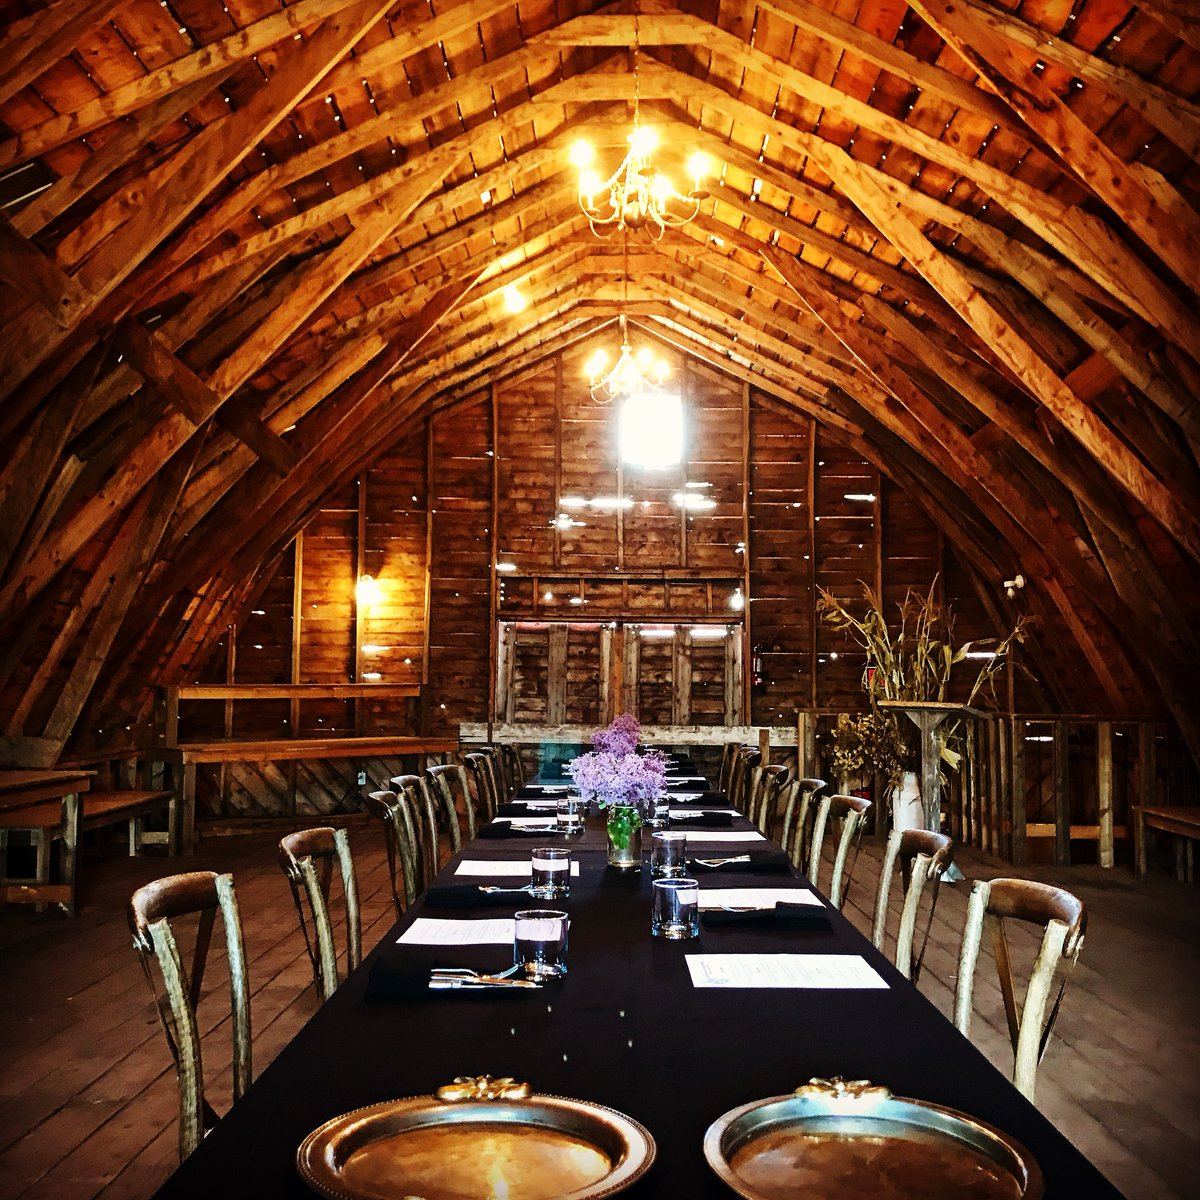 Old Red Barn Dairy Farm Five Courses Highlighting Local Producers And Their Hard Work